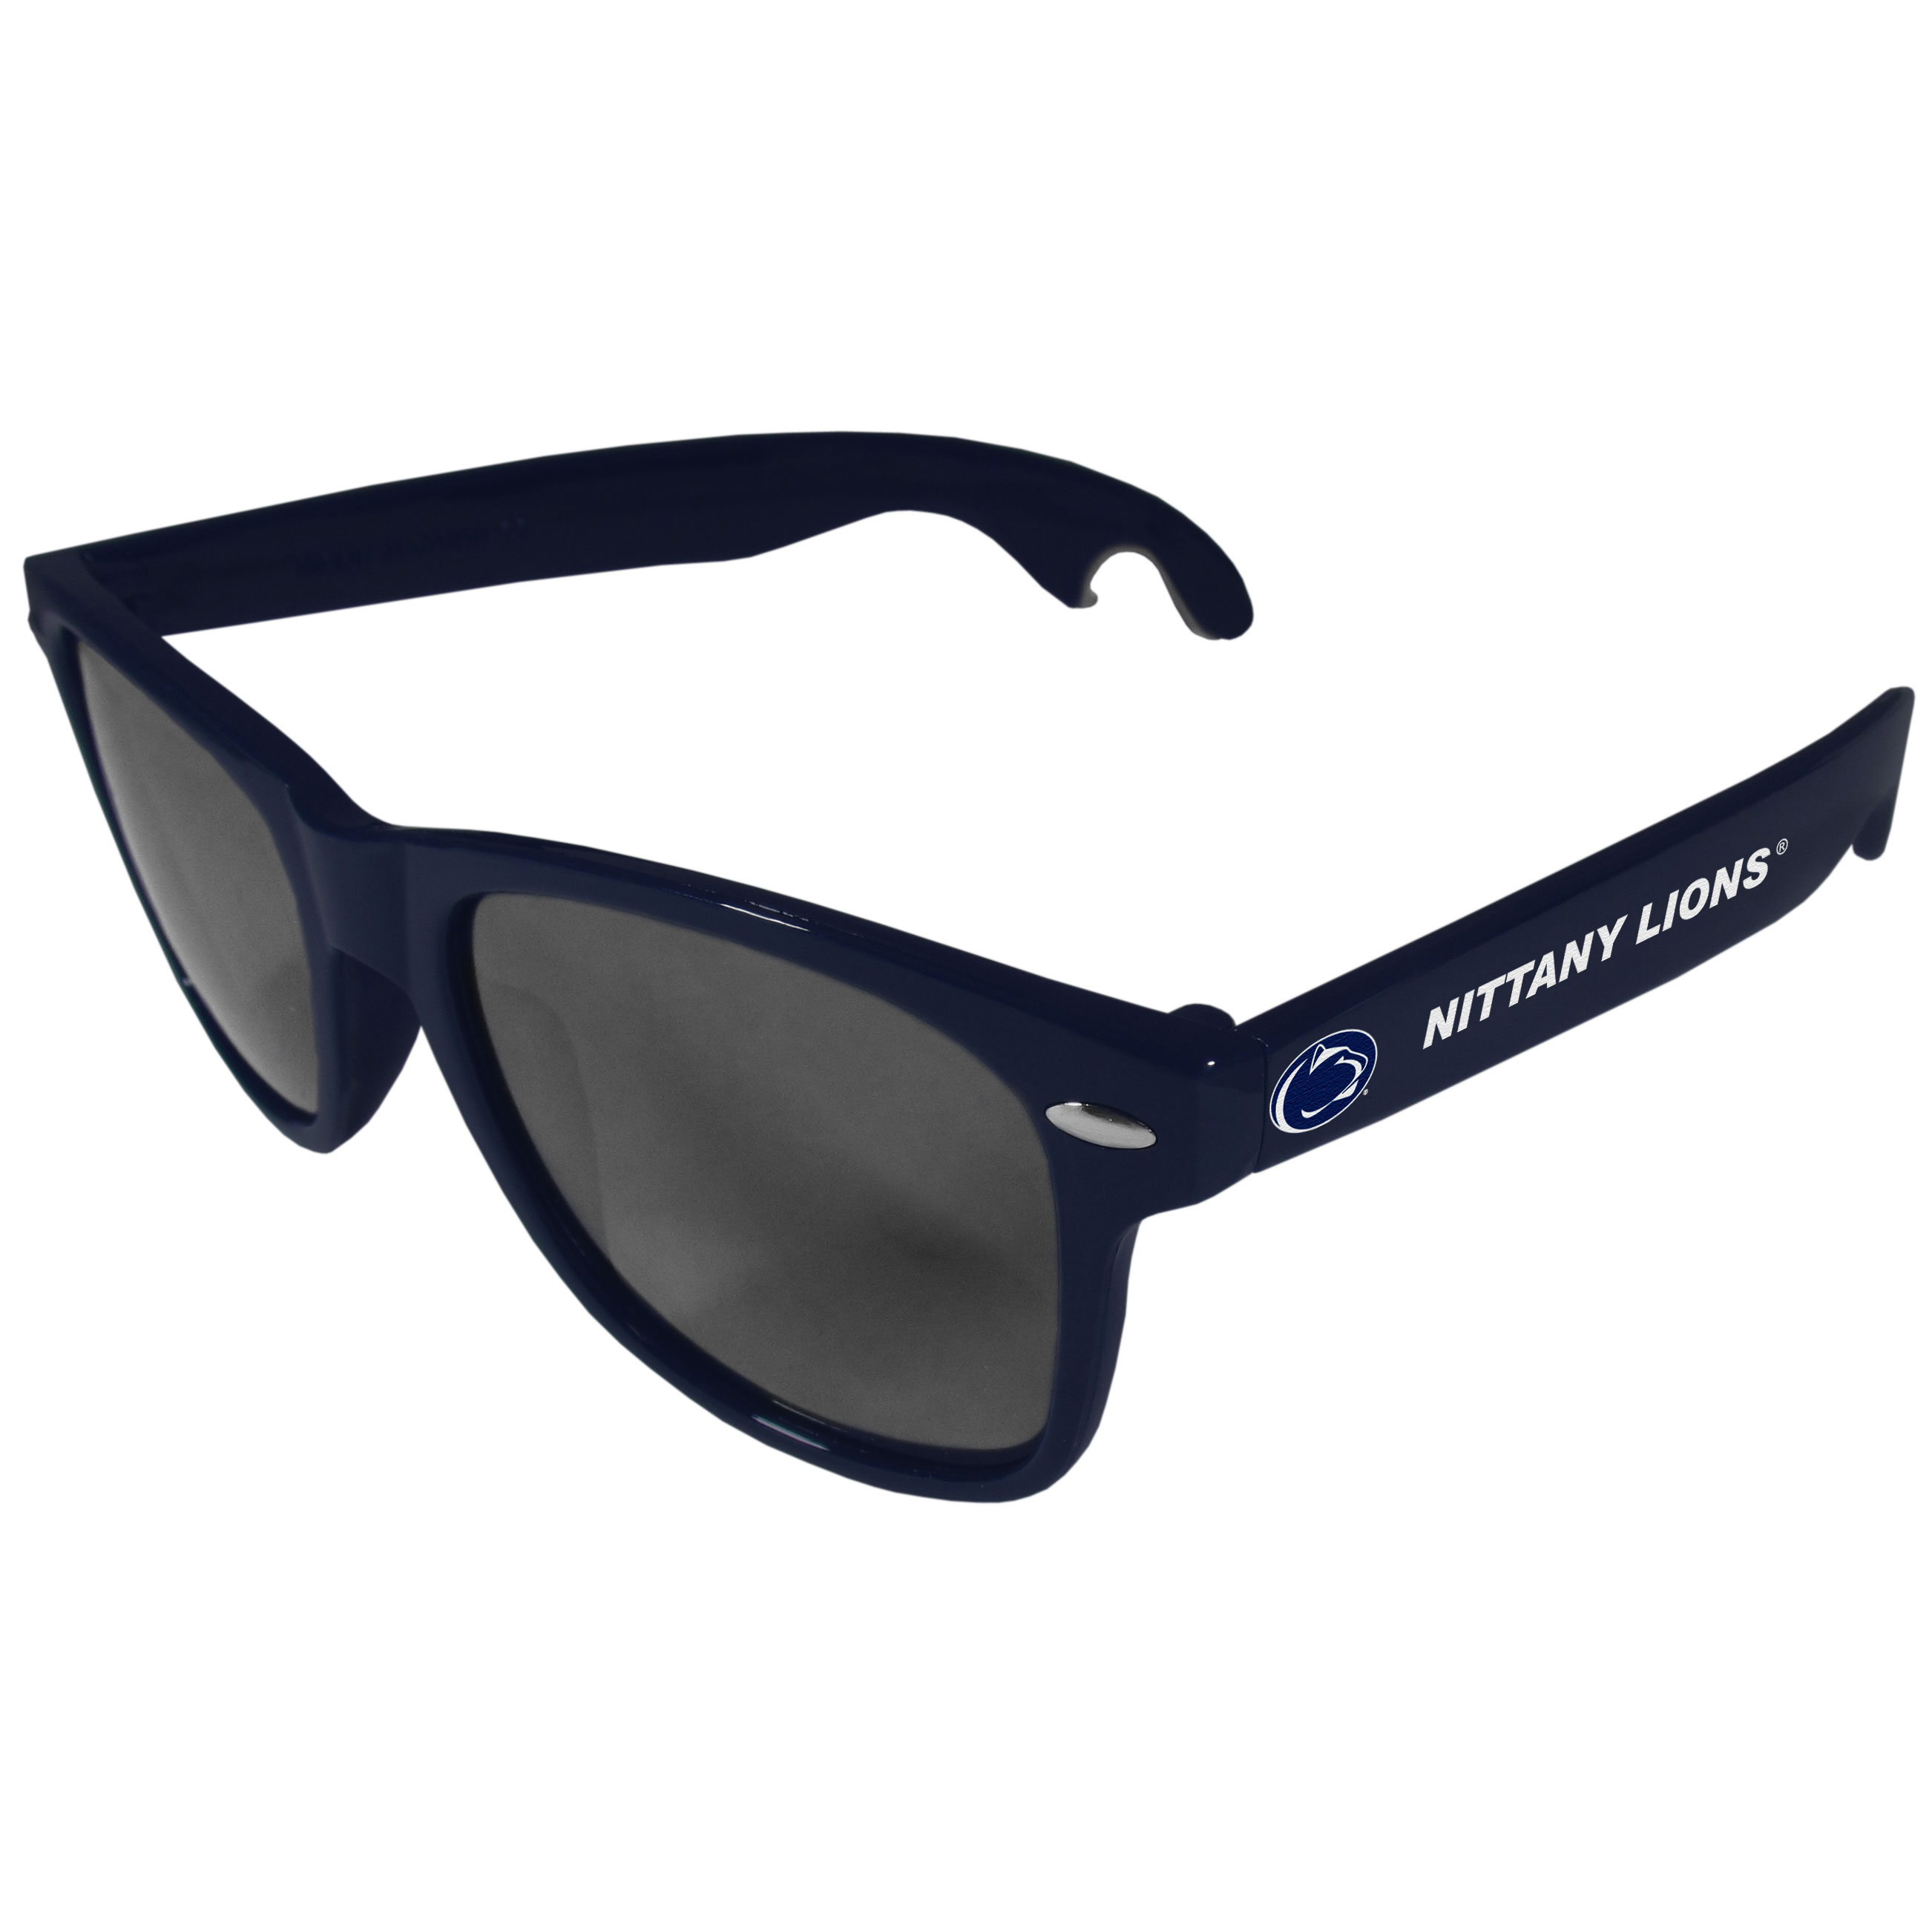 Penn St. Nittany Lions Beachfarer Bottle Opener Sunglasses, Dark Blue - Seriously, these sunglasses open bottles! Keep the party going with these amazing Penn St. Nittany Lions bottle opener sunglasses. The stylish retro frames feature team designs on the arms and functional bottle openers on the end of the arms. Whether you are at the beach or having a backyard BBQ on game day, these shades will keep your eyes protected with 100% UVA/UVB protection and keep you hydrated with the handy bottle opener arms.